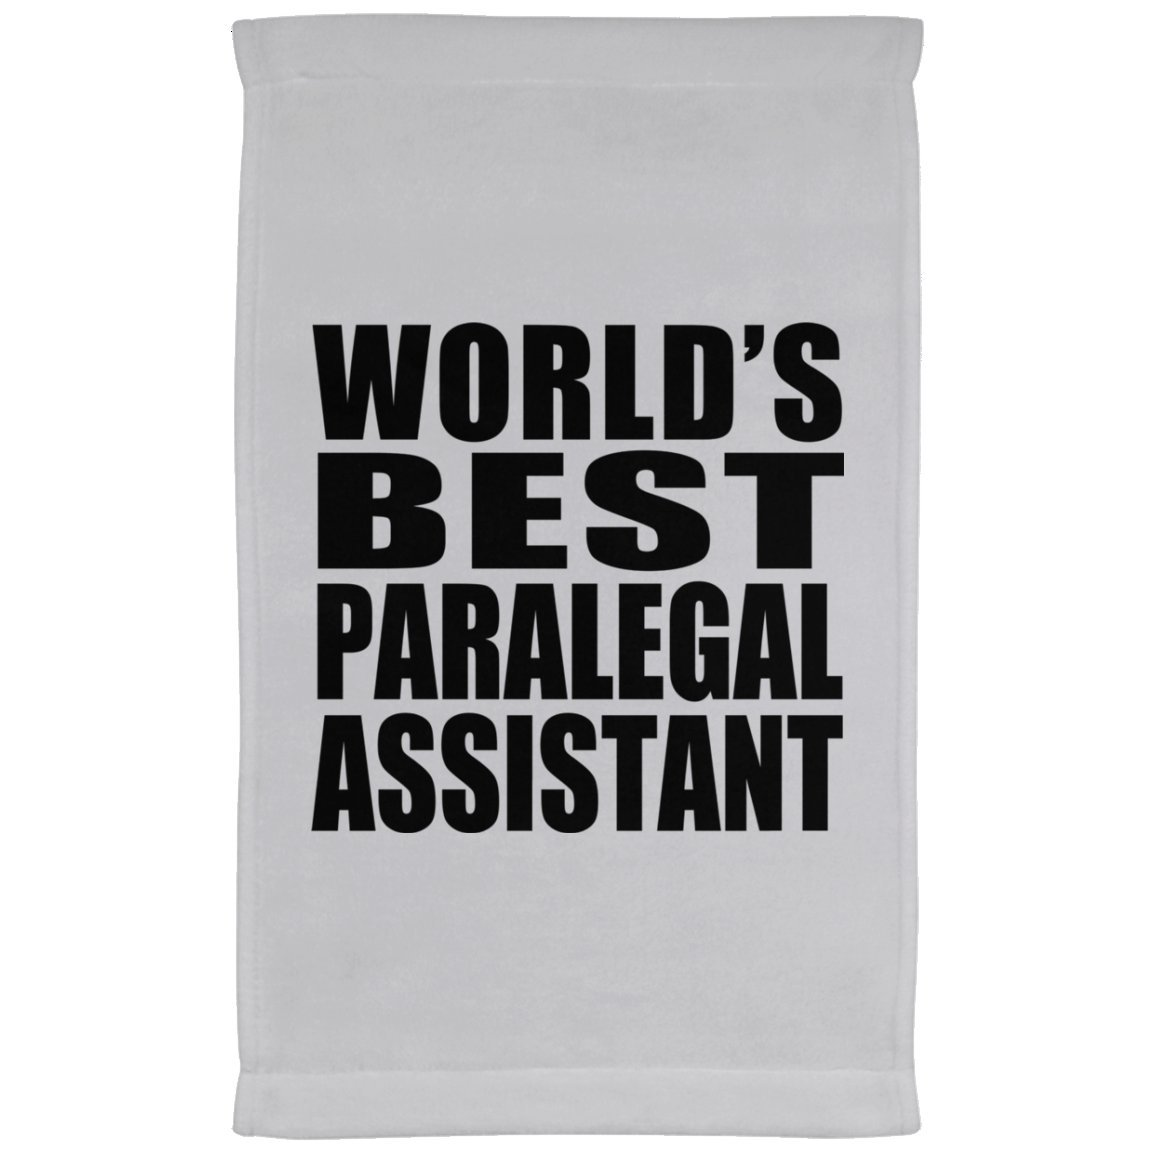 Designsify World's Best Paralegal Assistant - Kitchen Towel, Microfiber Velour Towel, Best Gift for Birthday, Anniversary, Easter, Valentine's Mother's Father's Day